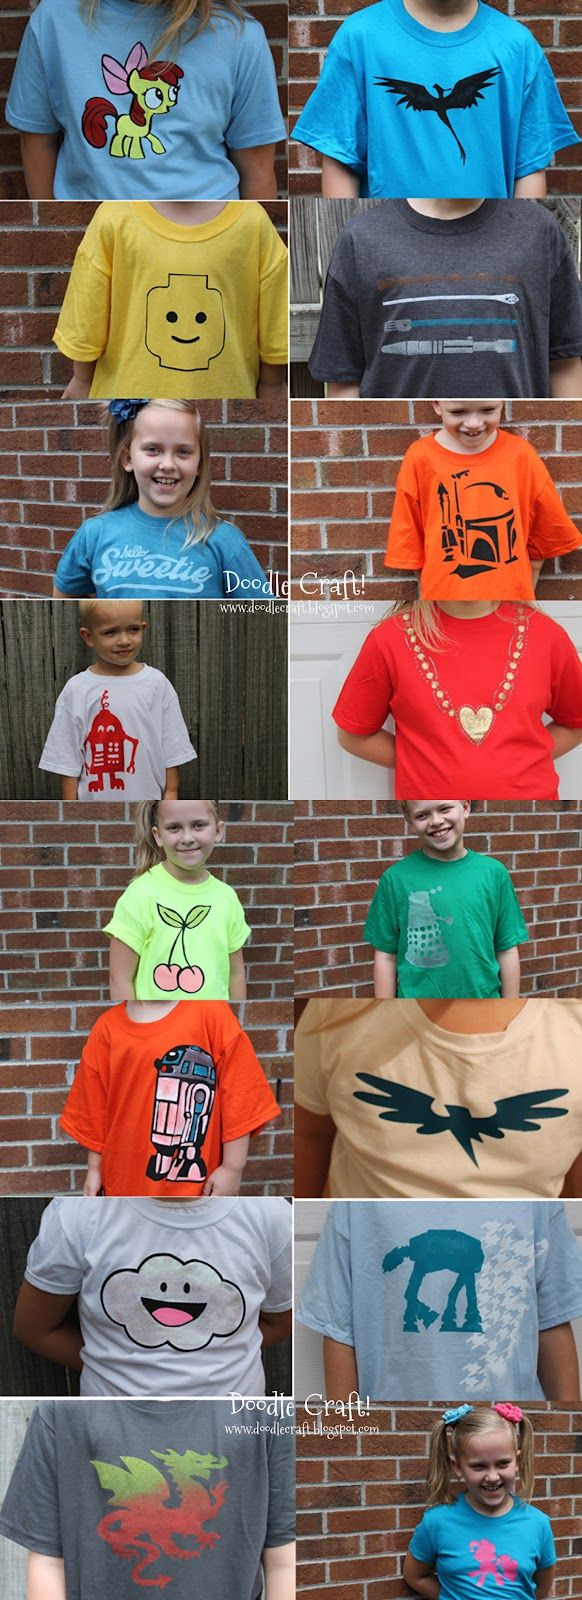 Freezer paper stenciled shirts.